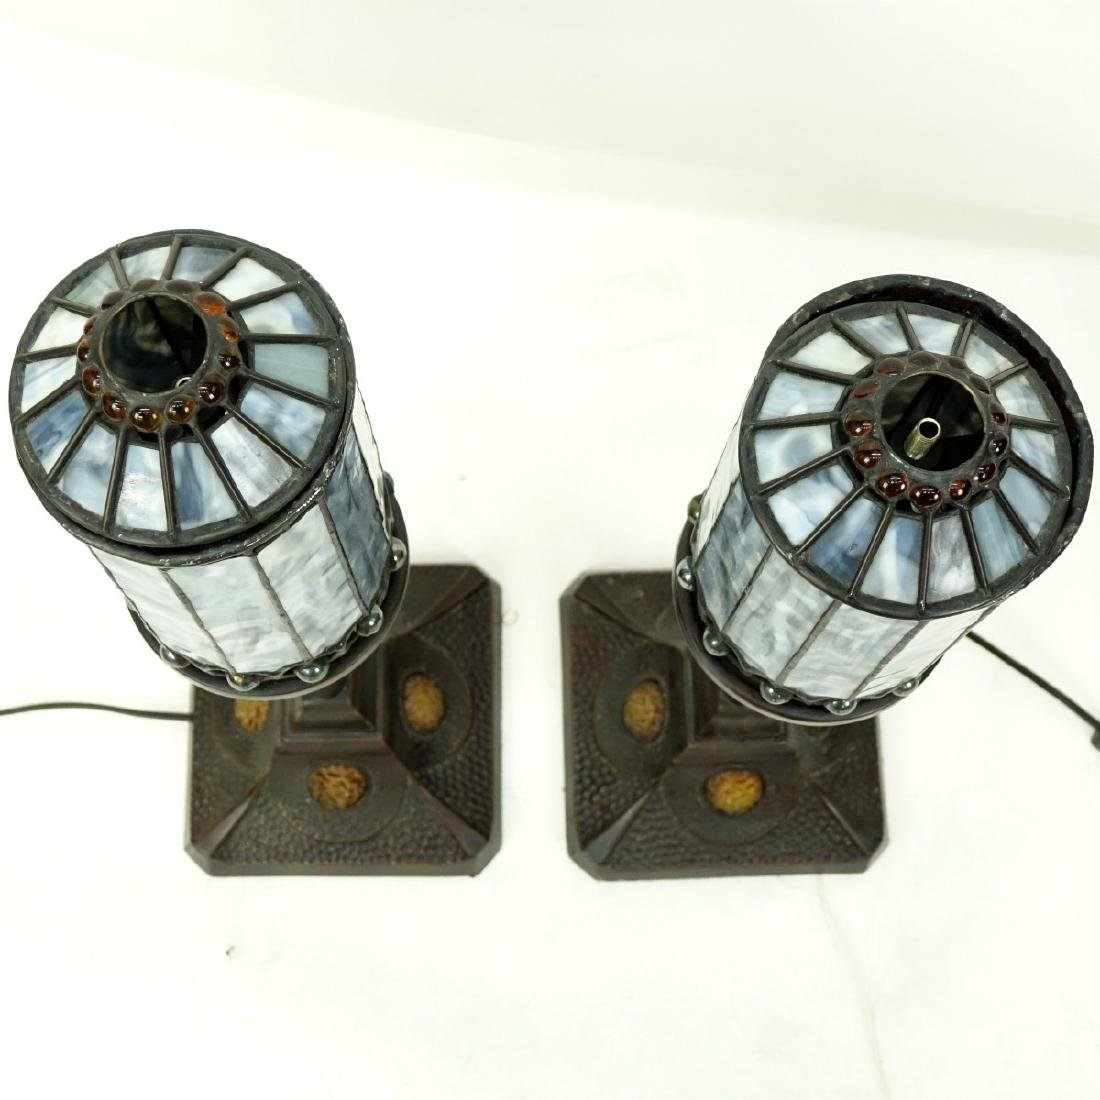 Pair Of Quoizel Inc Lamps With Leaded Glass Shades - 3